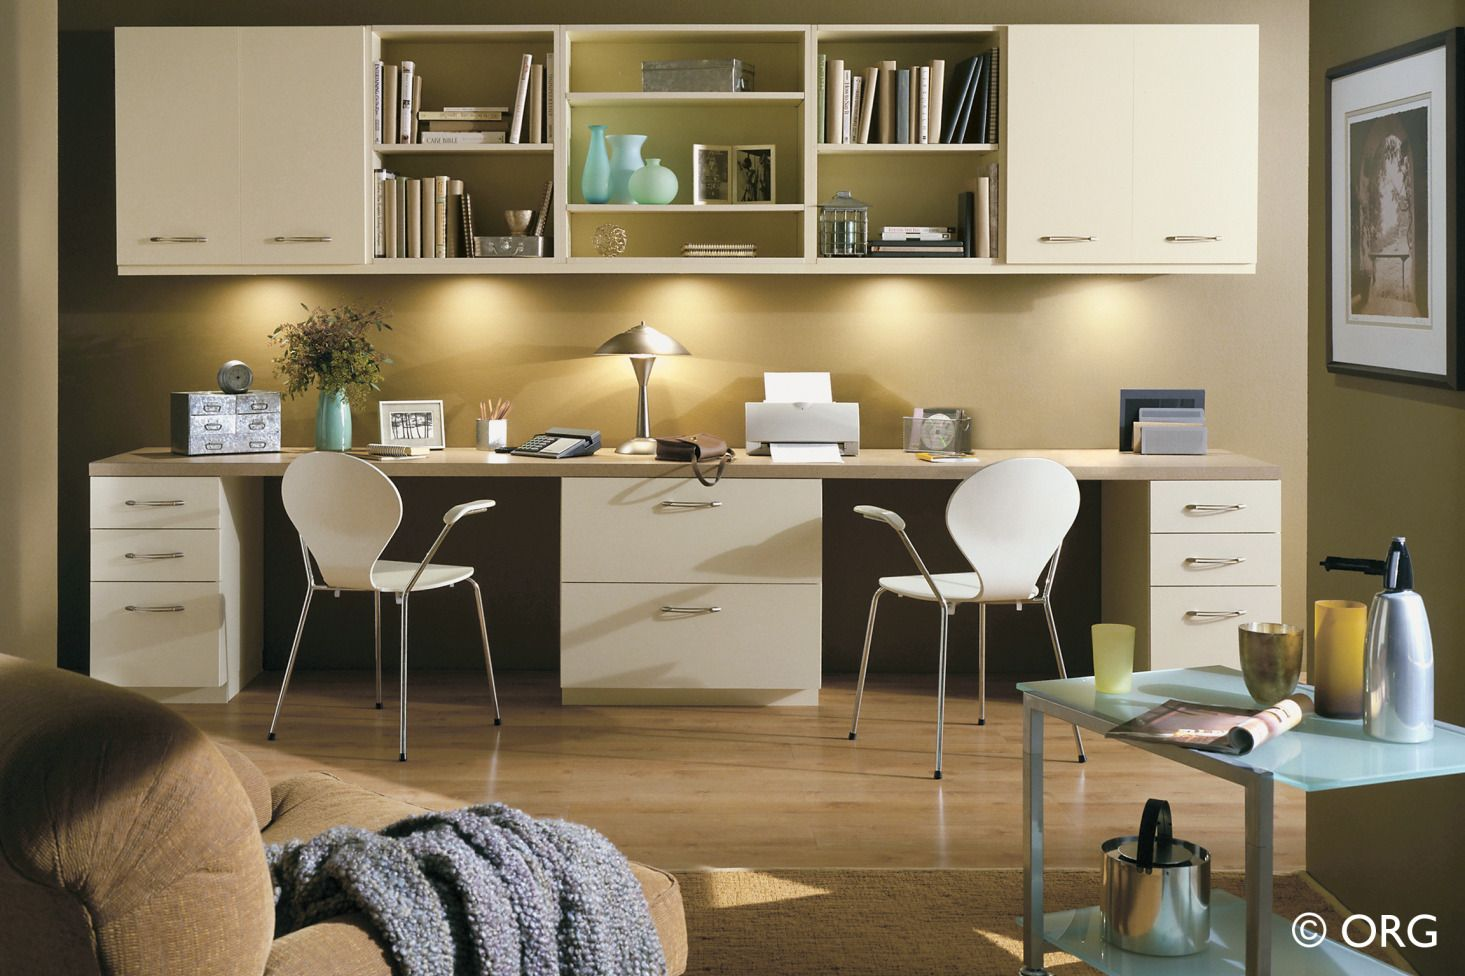 55 Ikea Office Wall Cabinets Expensive Home Office Furniture Check More At Http Adi Home Office Storage Living Room Office Furniture Home Office Furniture